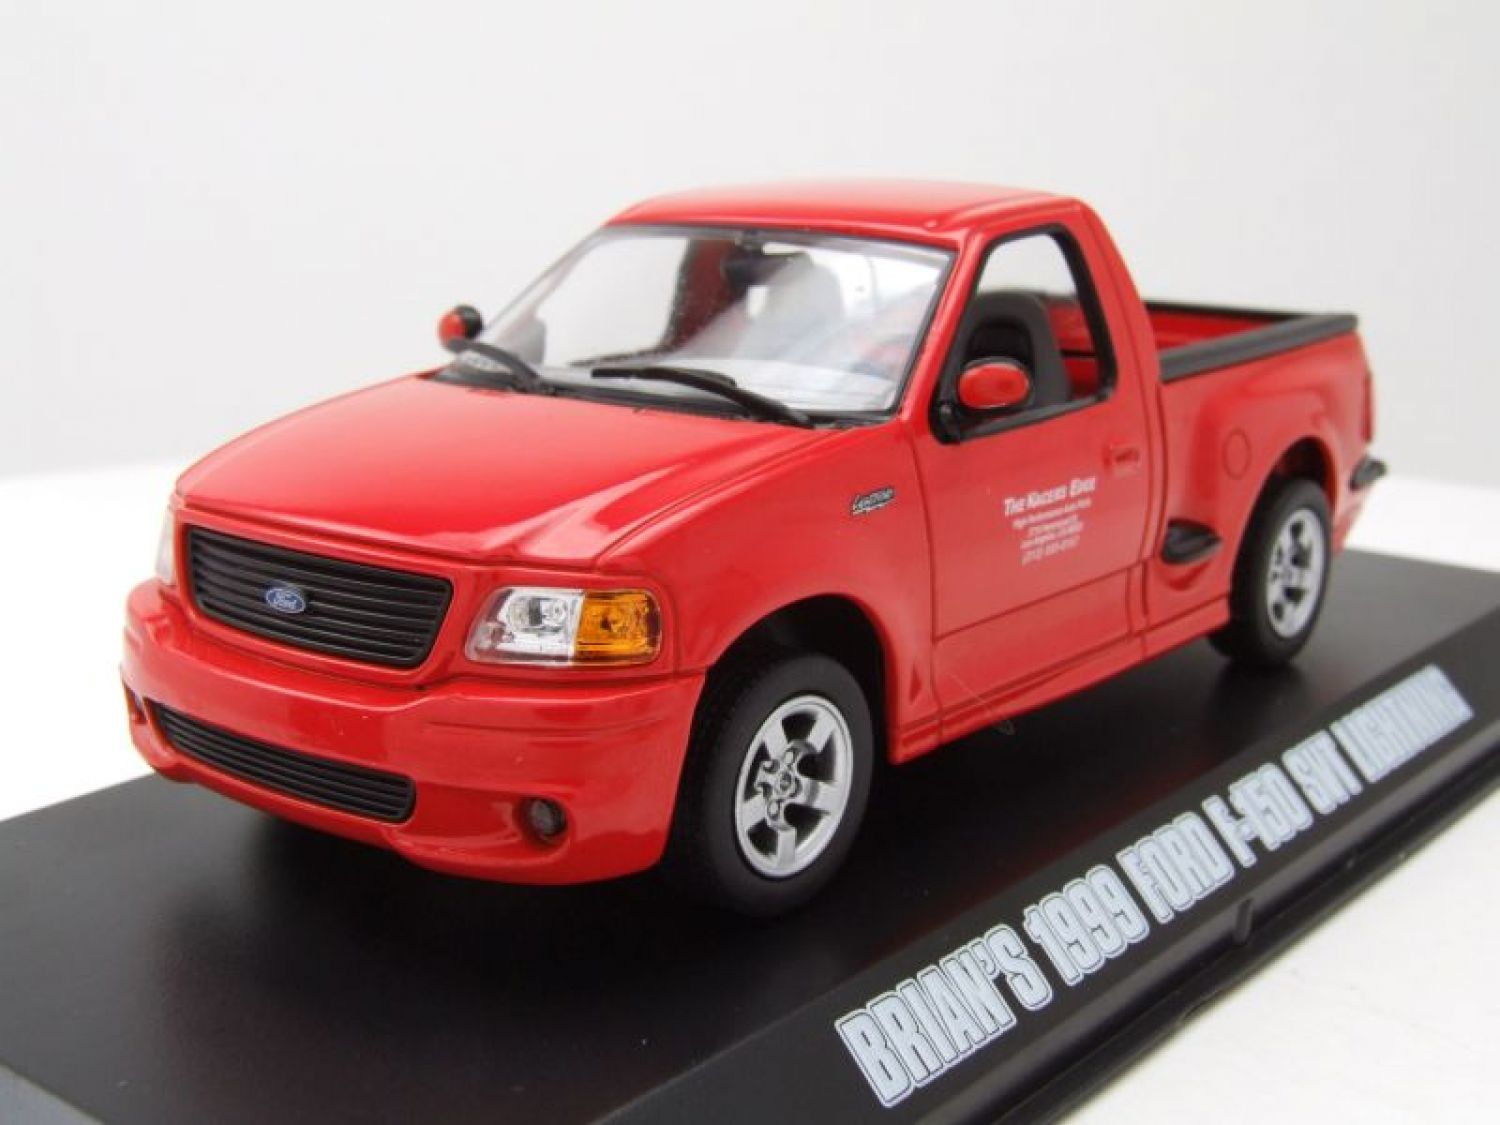 FORD F-150 PICK UP SVT FULMINE 1999 rosso,Brian Fast & Furious ...